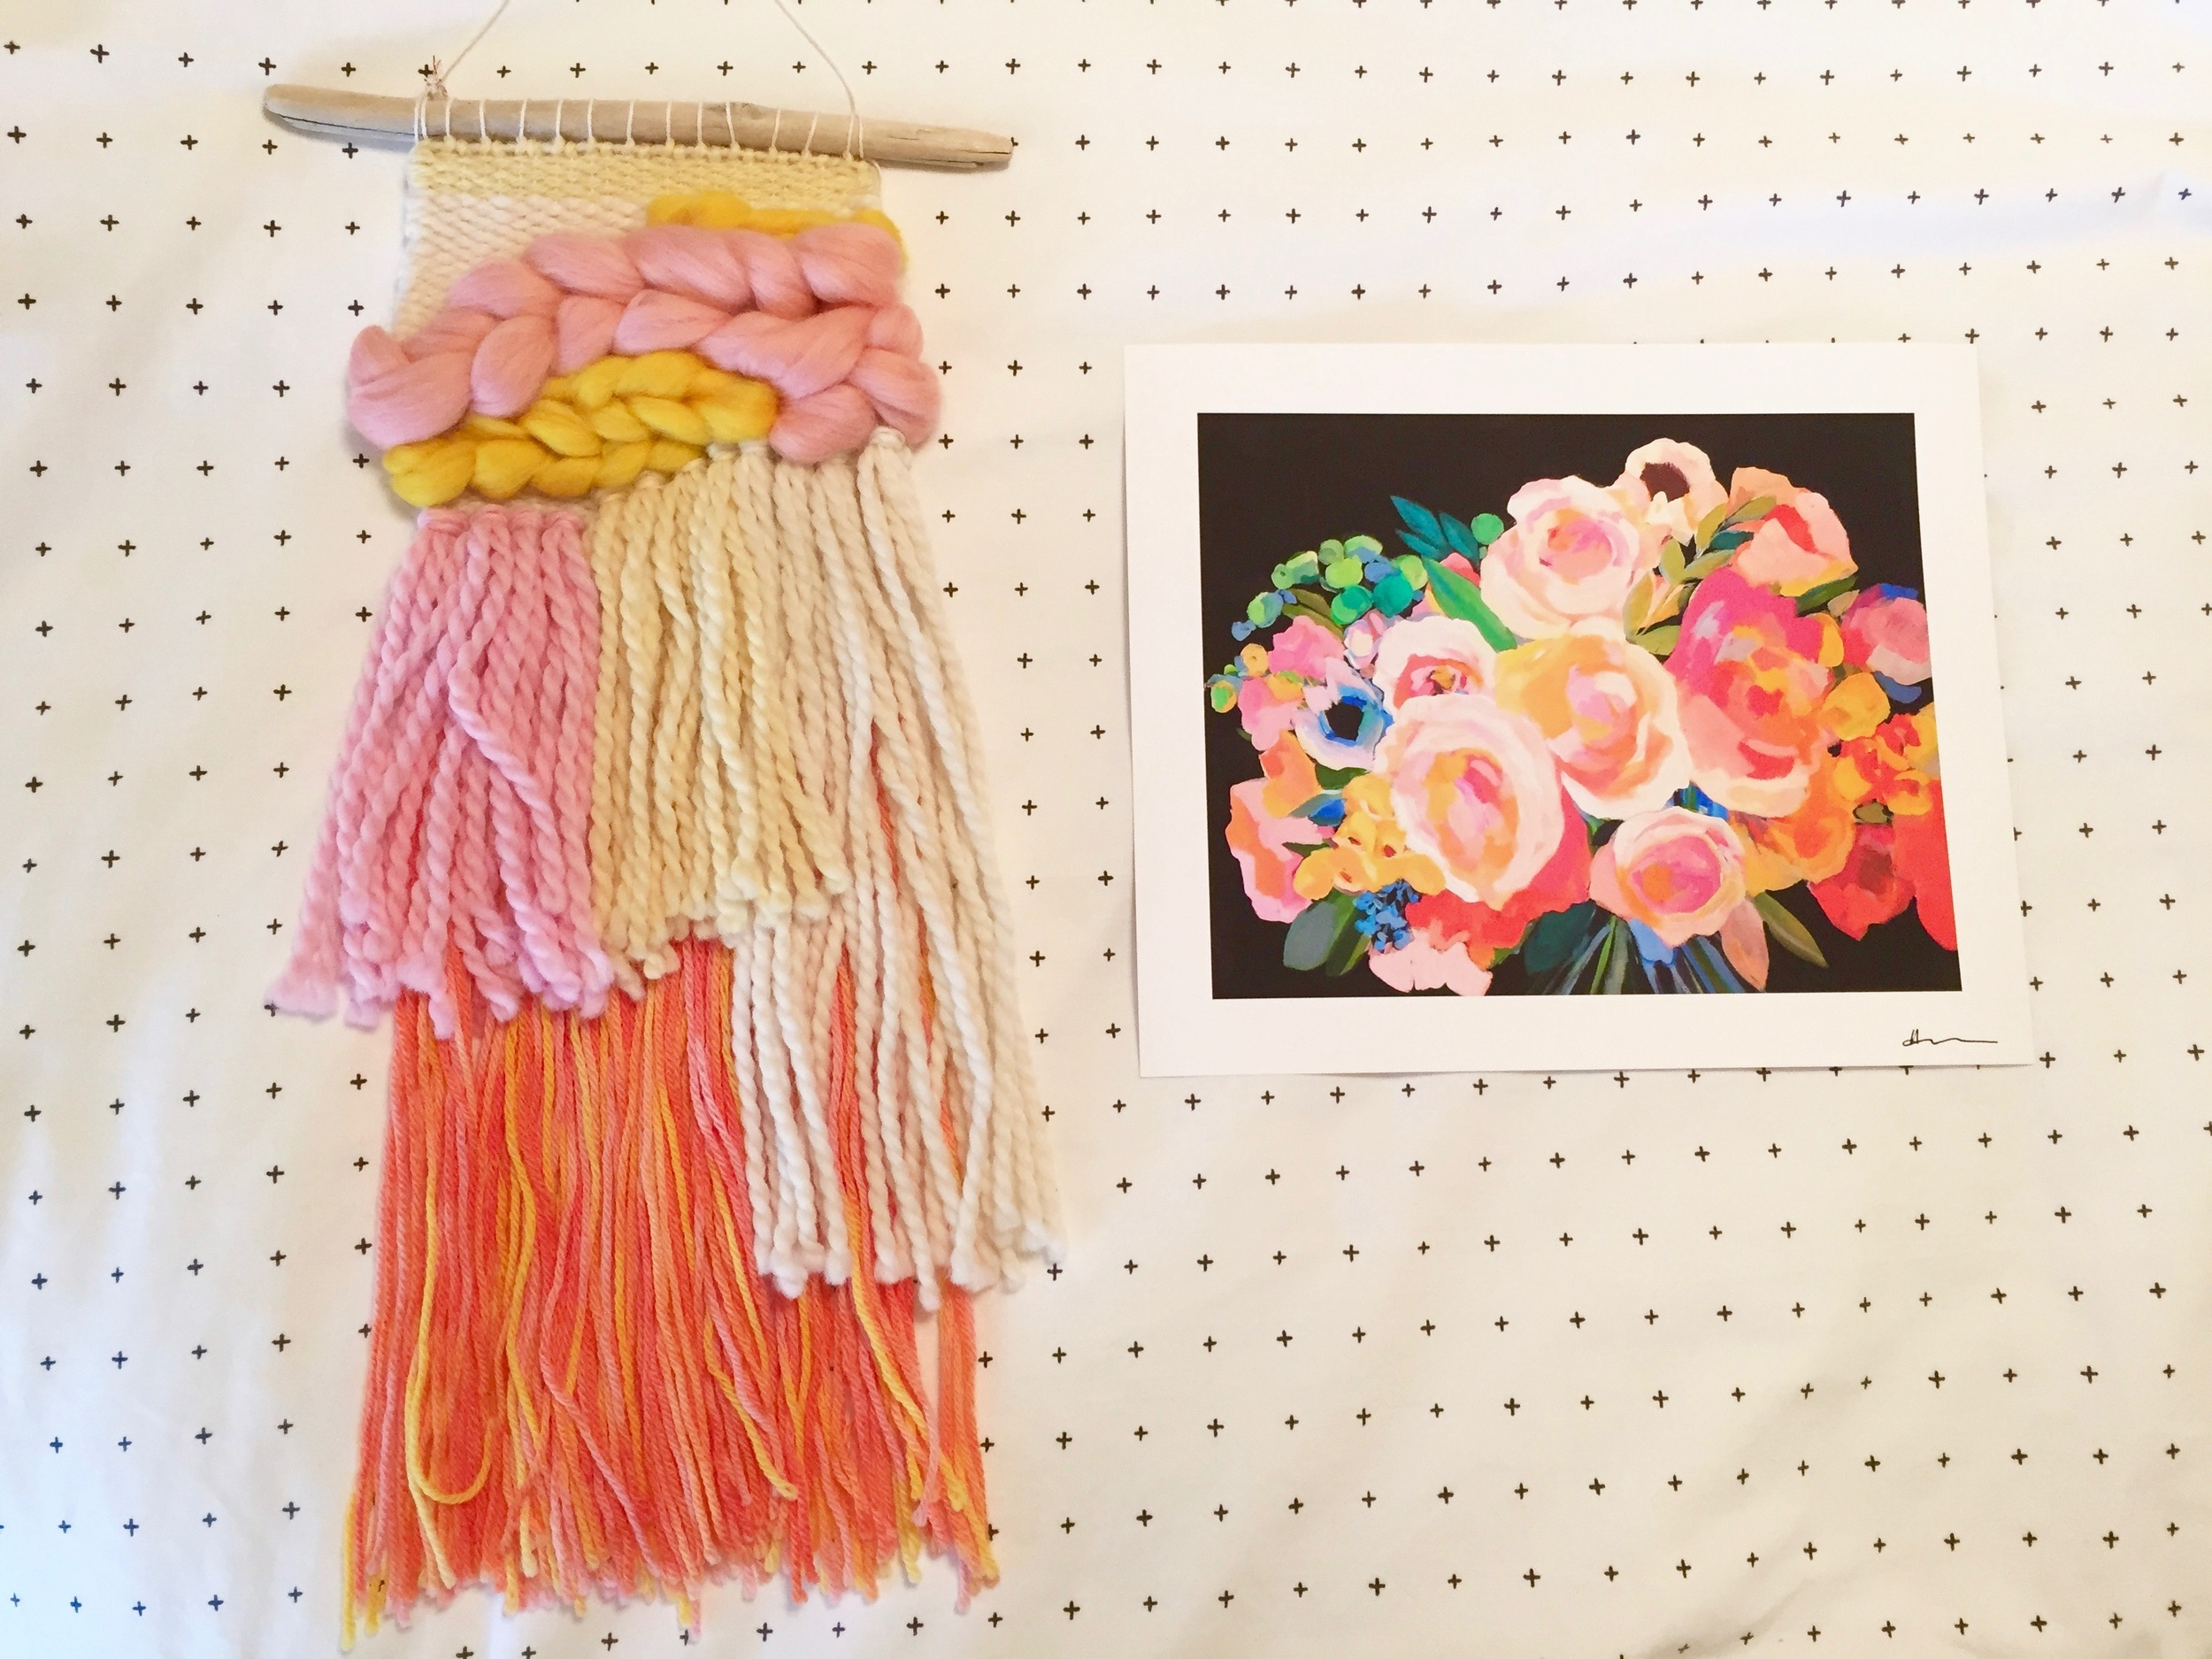 My weaving from Wool and Weave and an art print from Hayley Mitchell, both purchased at The Dallas Flea.